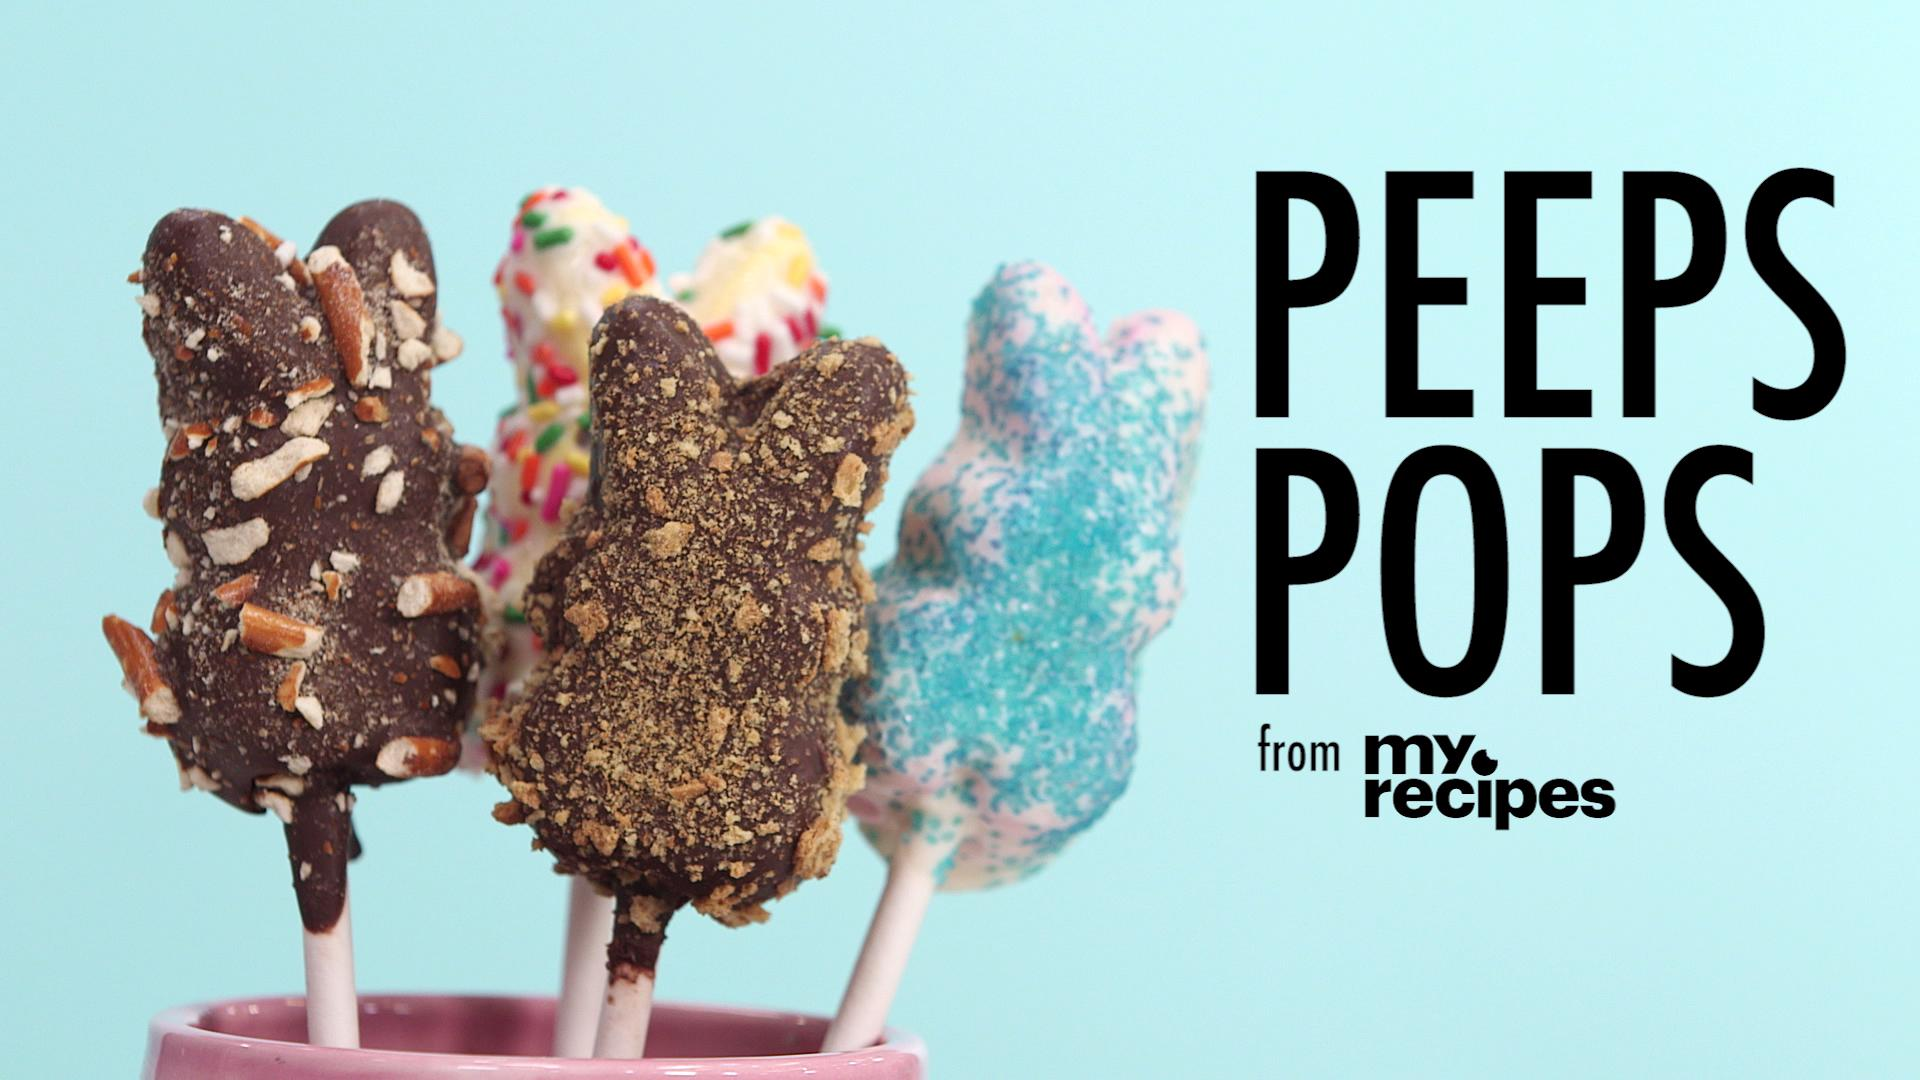 How To Make Easter Peeps Pops